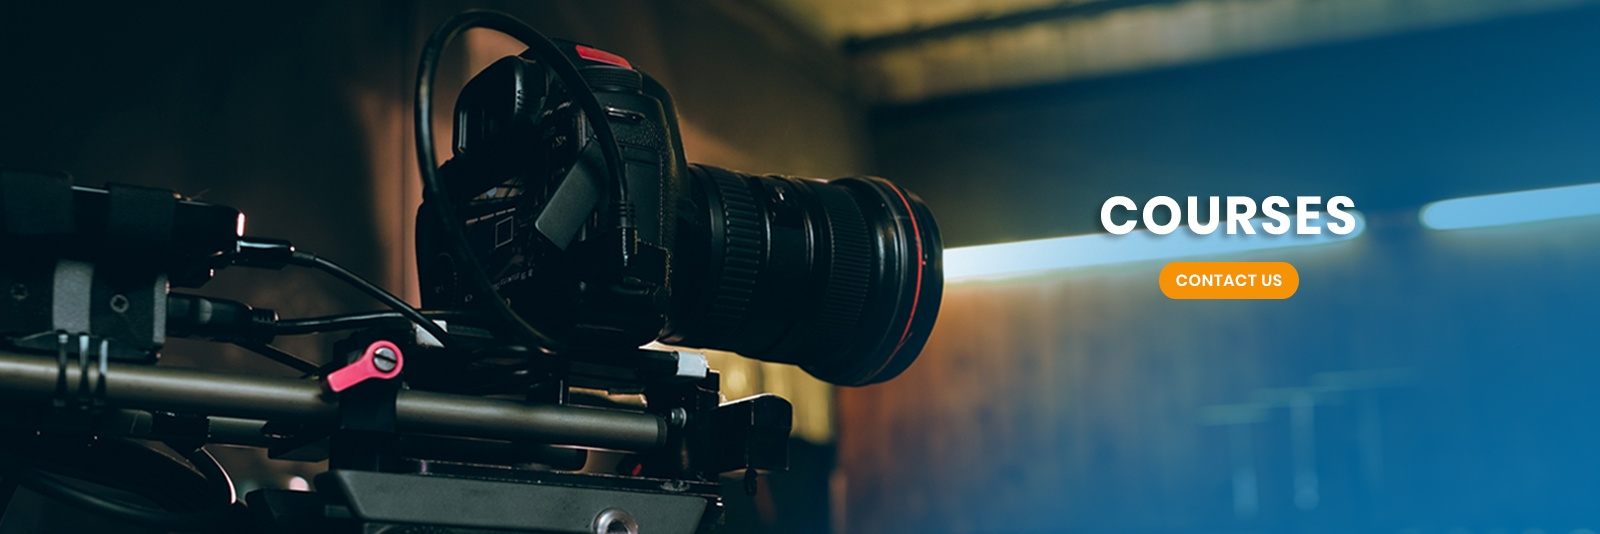 Video Production Courses by Tetra Films - Vancouver Video Production Company